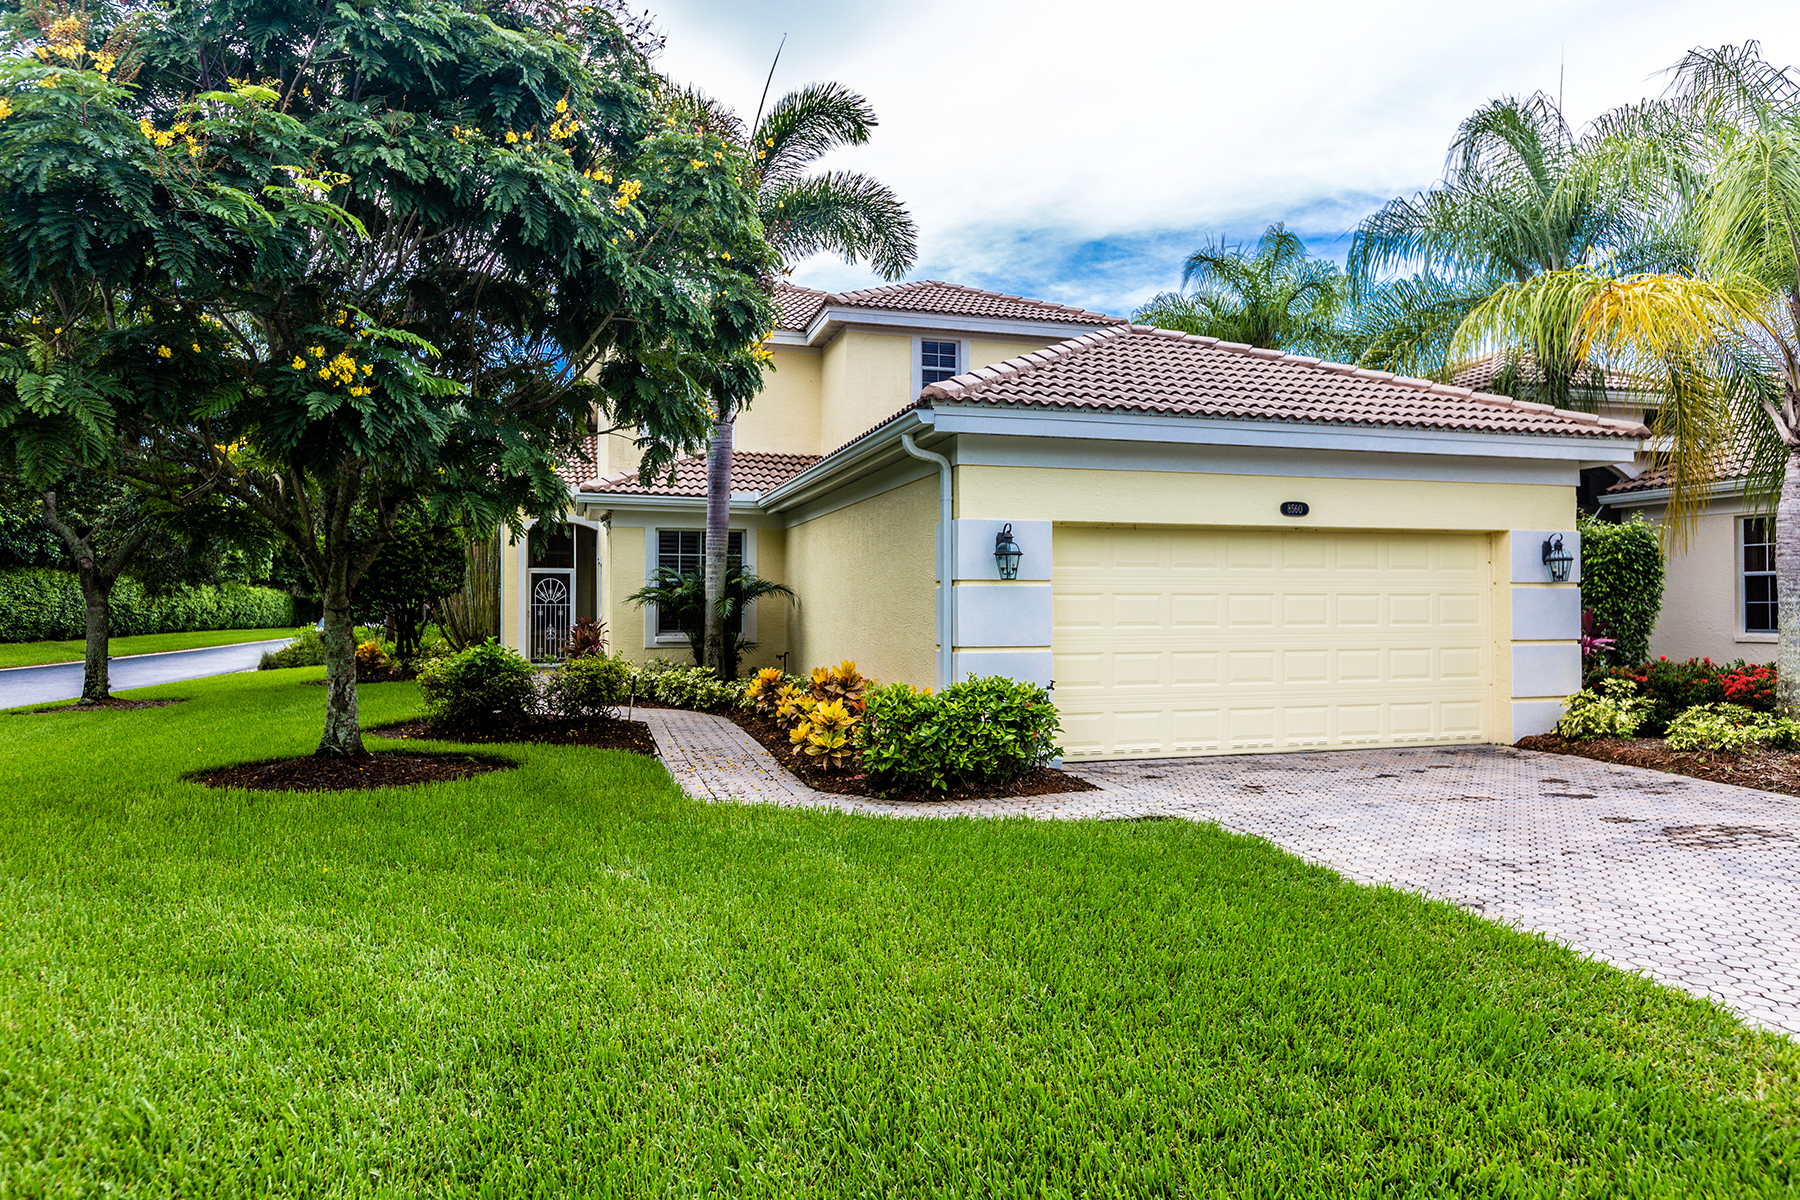 Single Family Home for Sale at FIDDLER'S CREEK - PEPPER TREE 8560 Pepper Tree Way Naples, Florida, 34114 United States